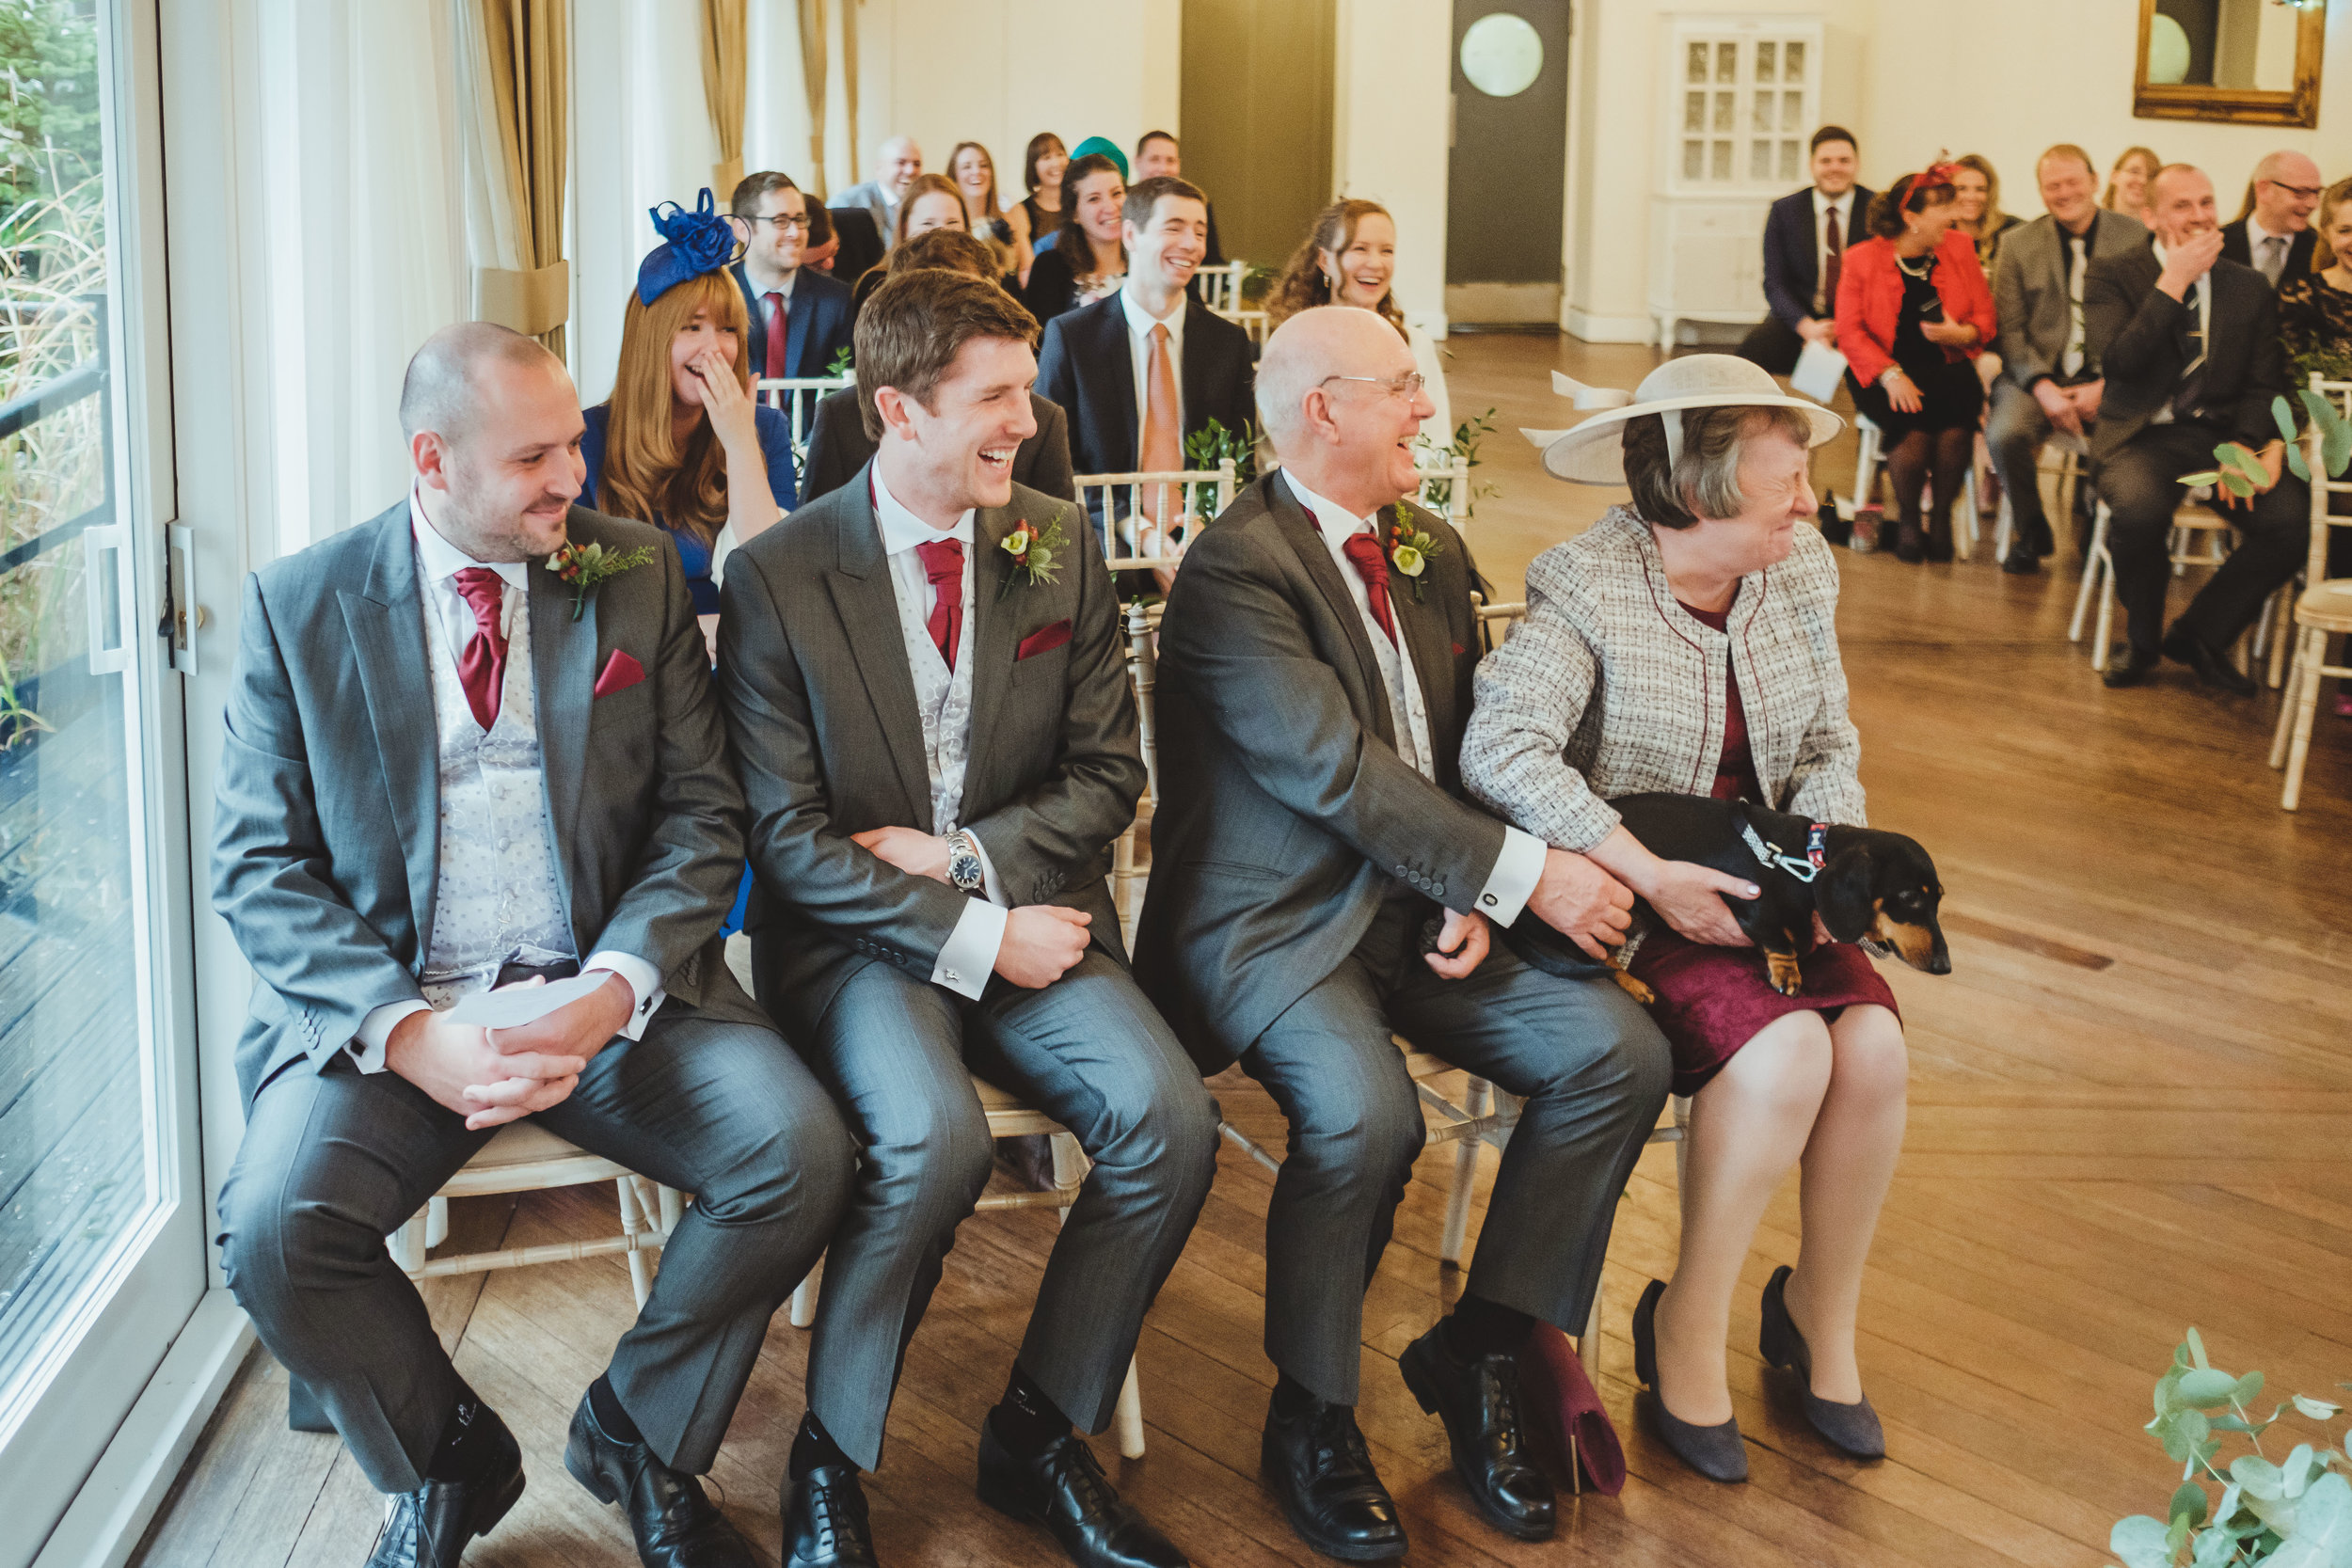 Wedding guests laugh as dog barks during the wedding ceremony